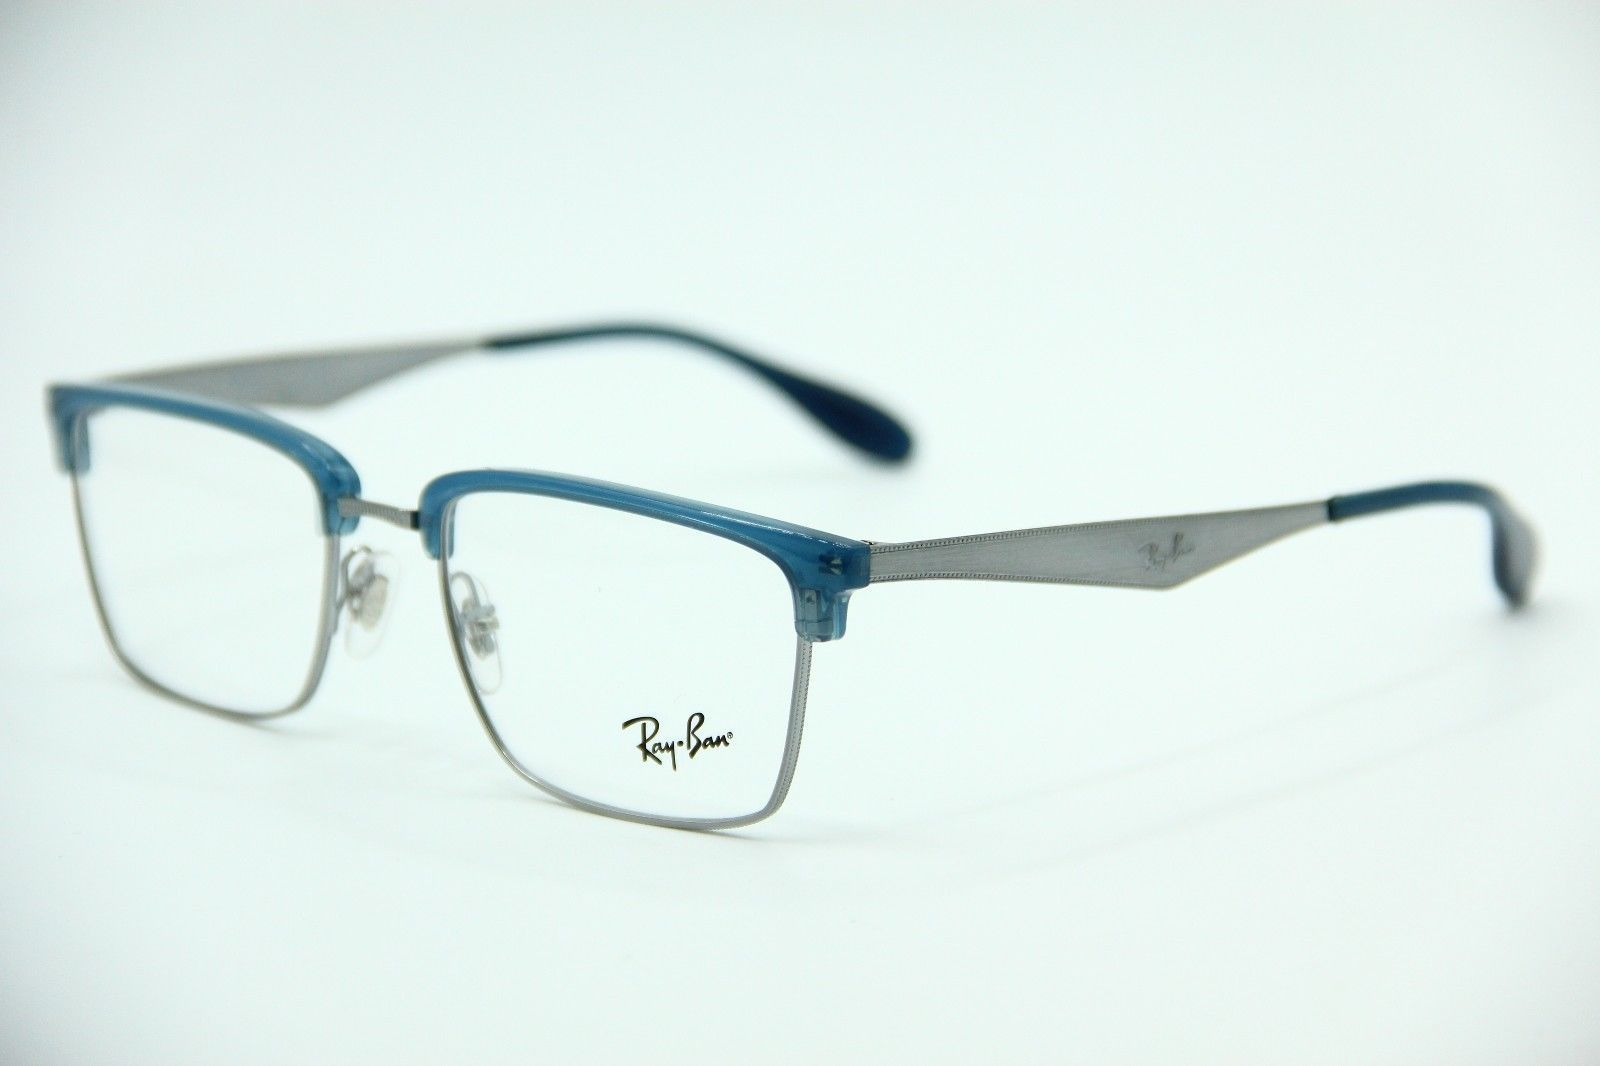 d0b4f4239c New RAY-BAN Rb 6397 2934 Blue Eyeglasses and 50 similar items. 57